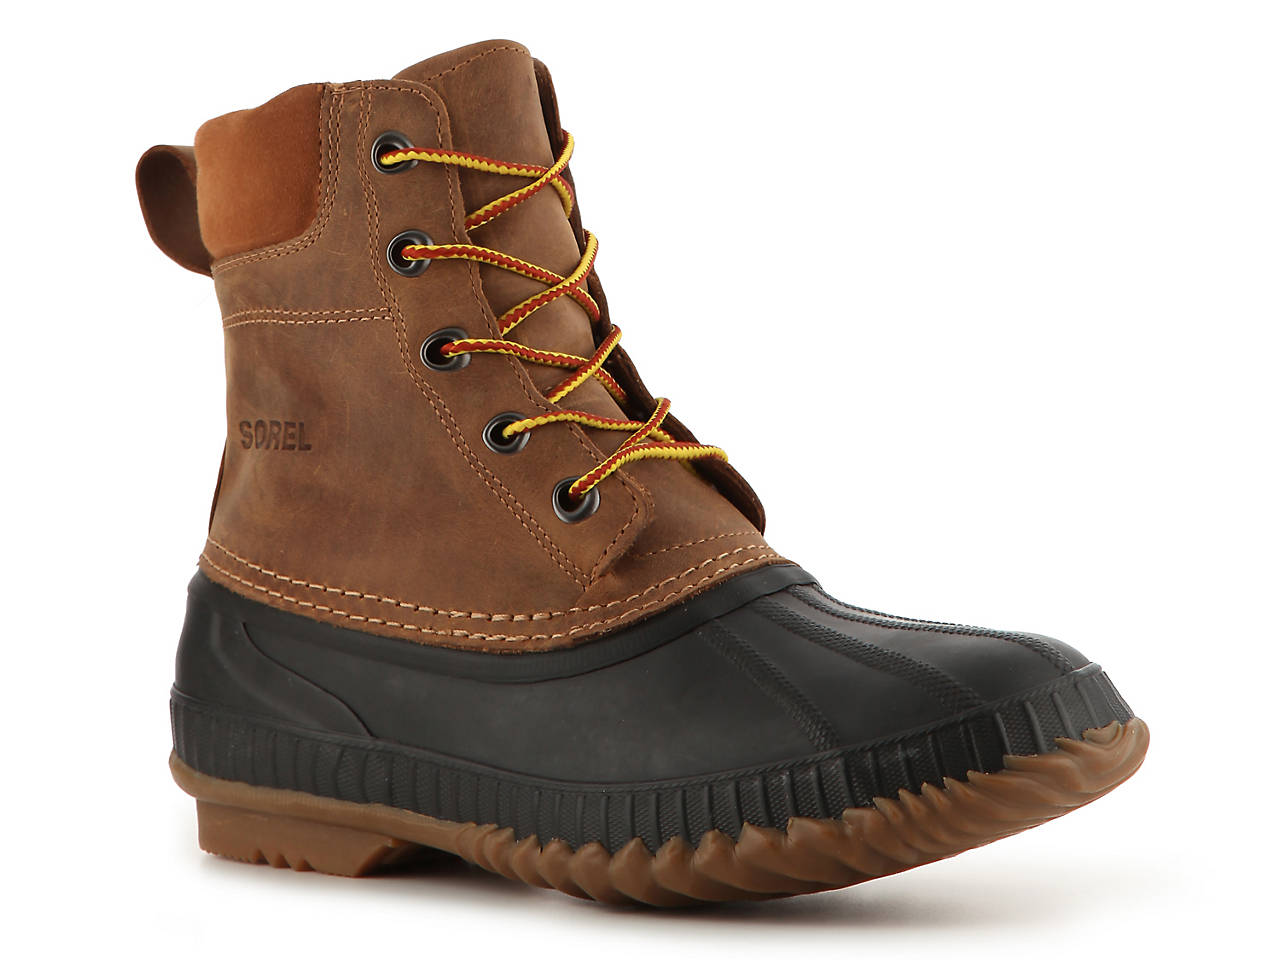 Footaction For Sale Sorel Cheyanne Snow Boot Discount 2018 New REAza